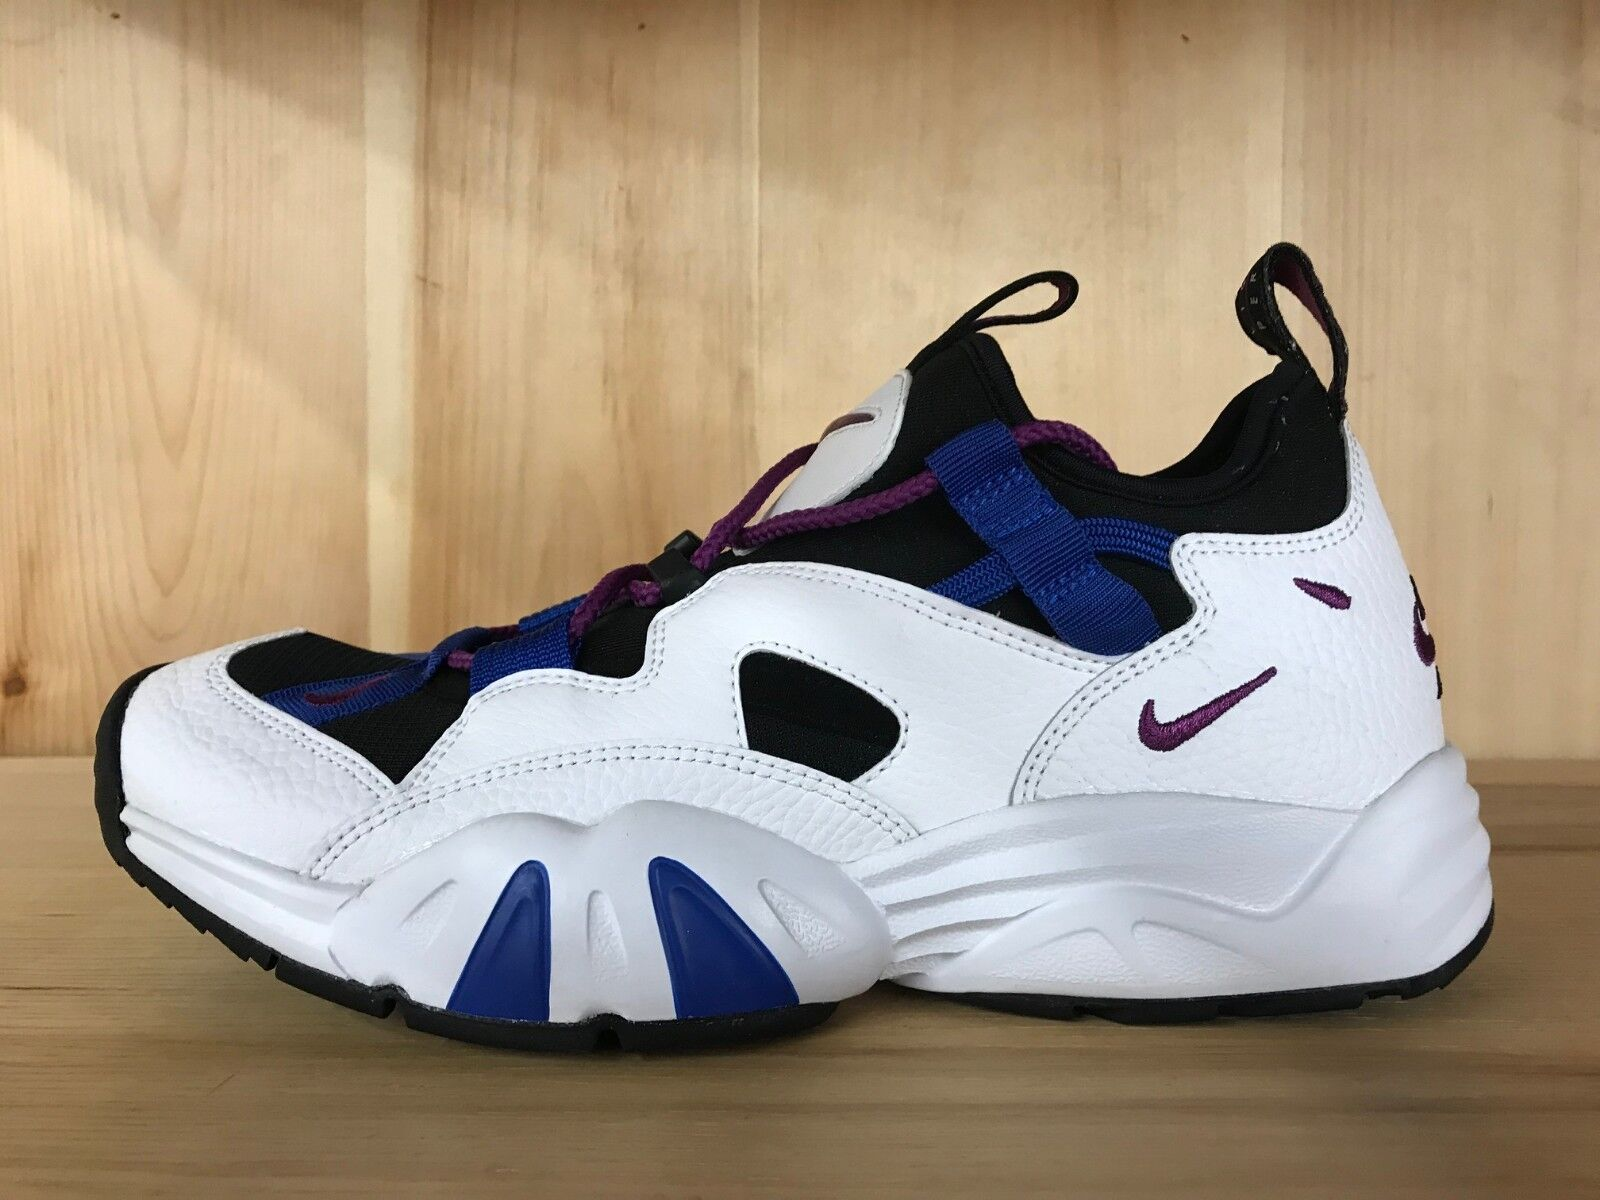 NIKE AIR SCREAM LWP WHITE BOLD BERRY LYON BLUE TRAINING MENS Price reduction best-selling model of the brand Seasonal price cuts, discount benefits